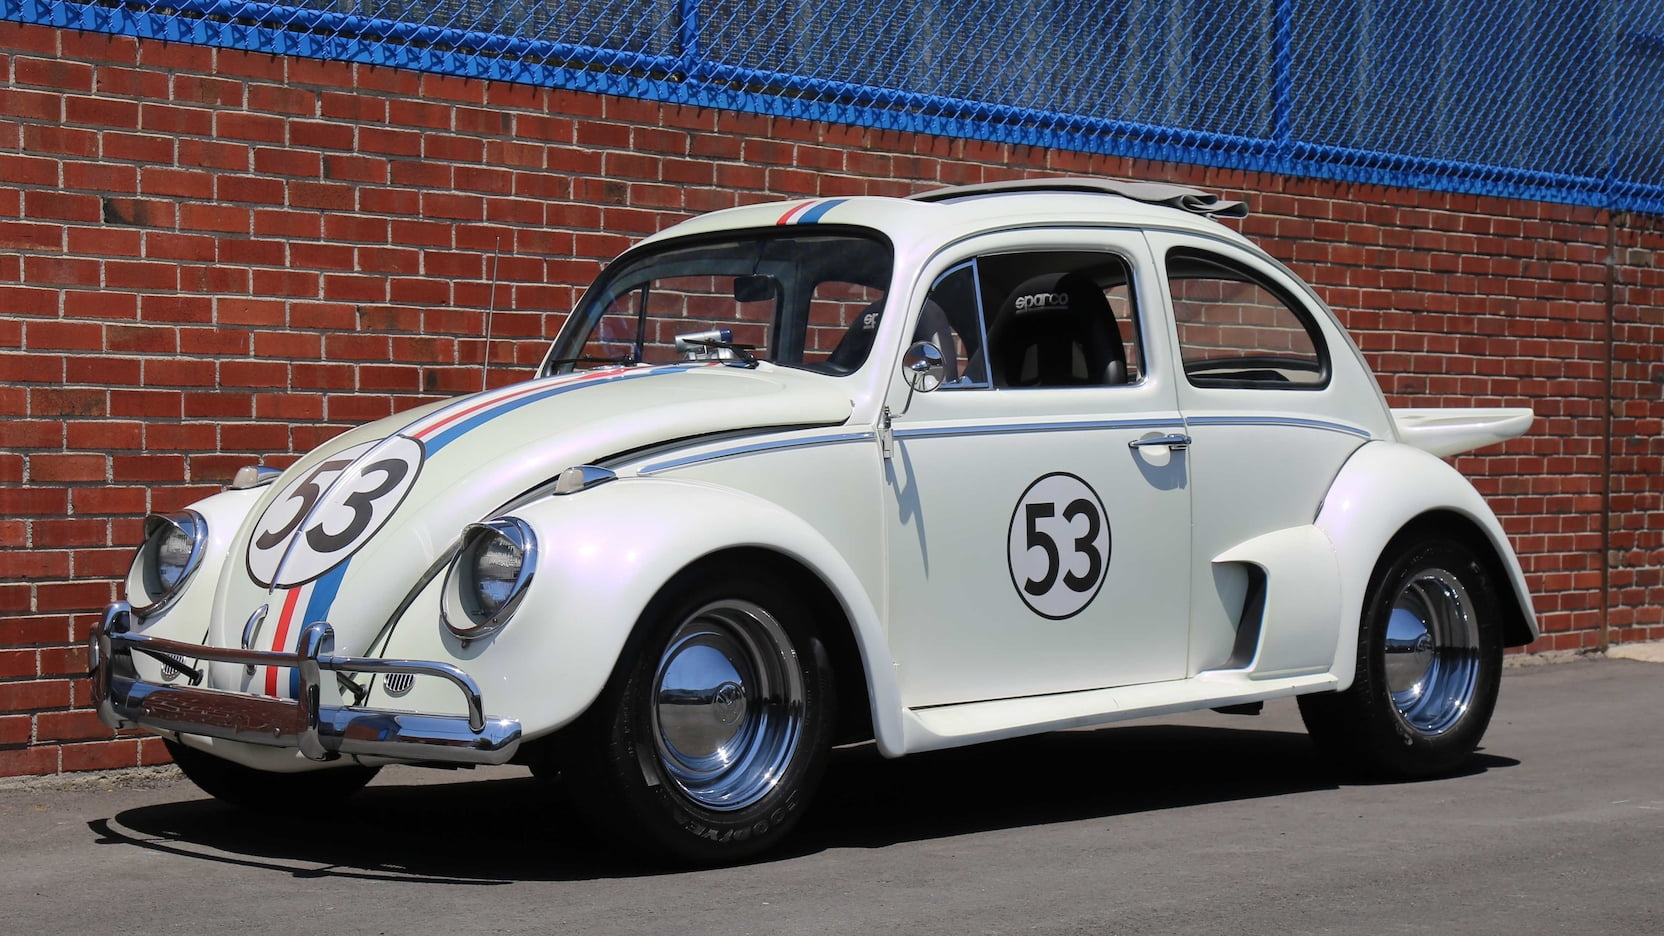 Street Racer Herbie from Herbie: Fully Loaded